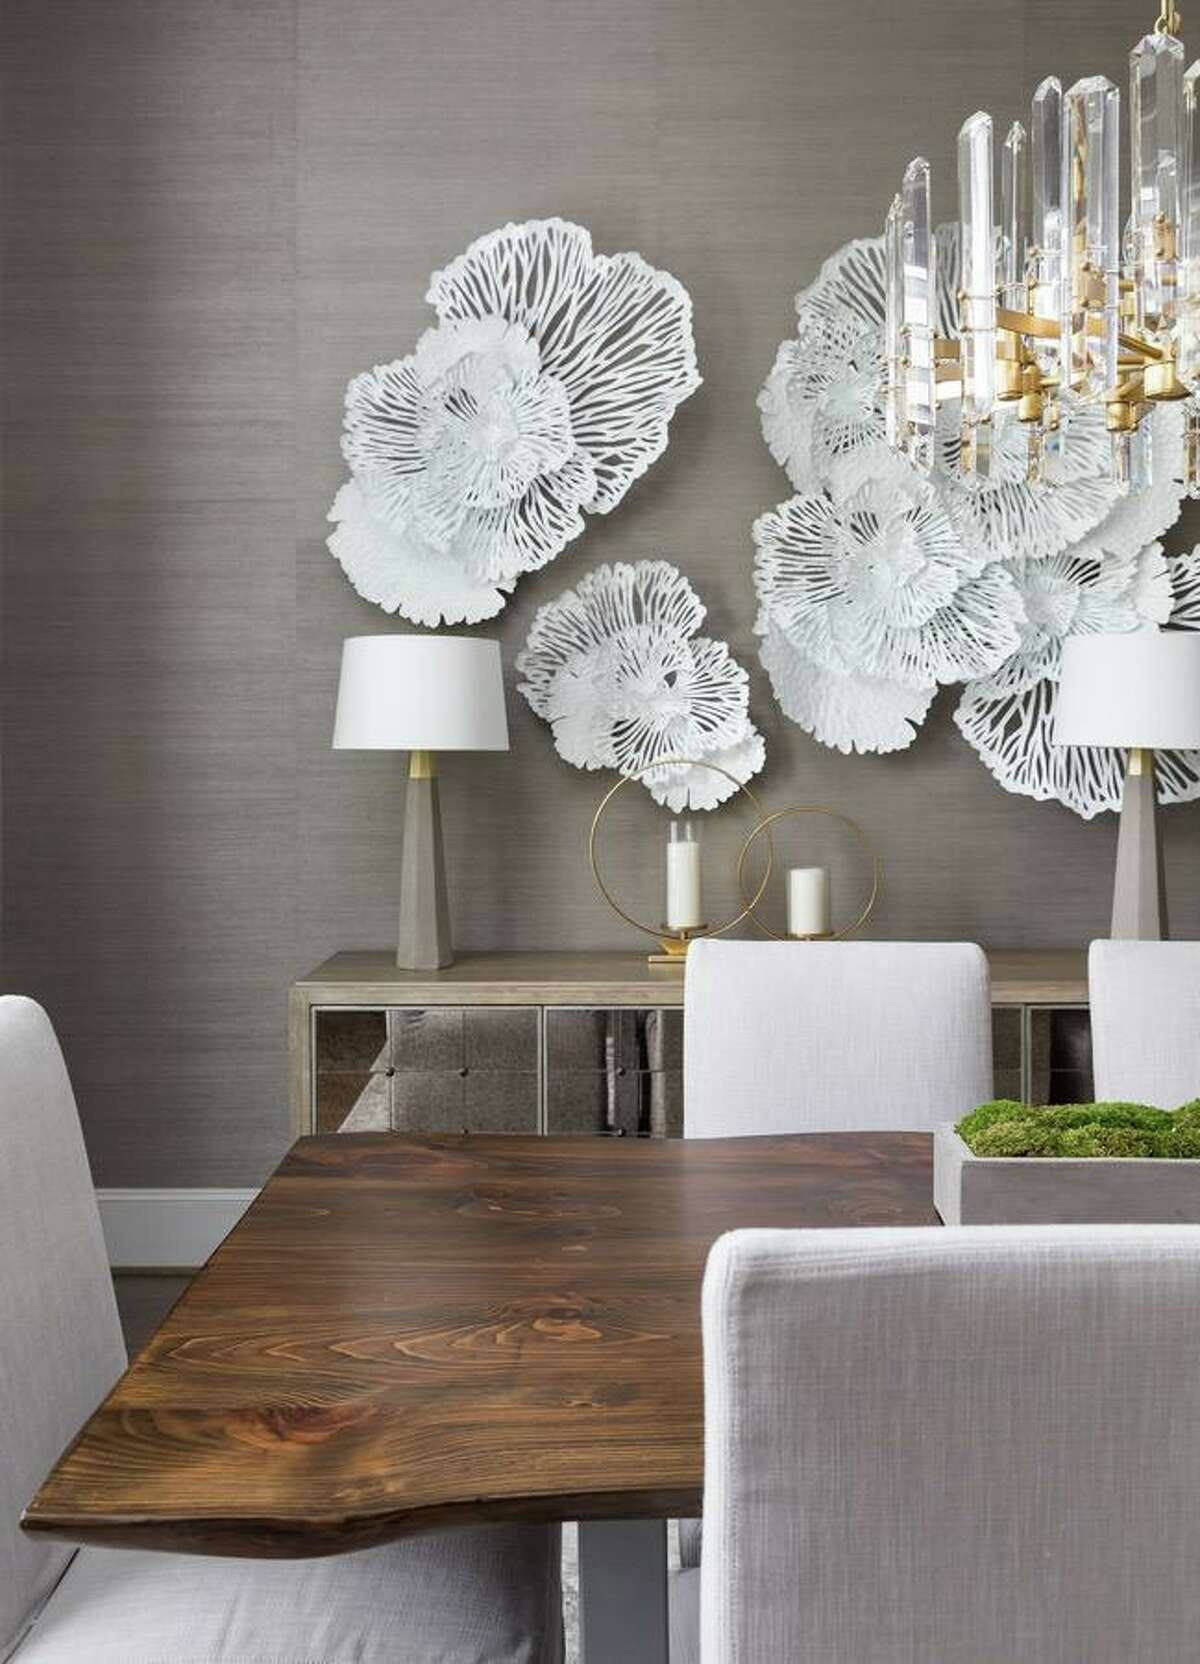 Large-scale wall decor can take the place of art.